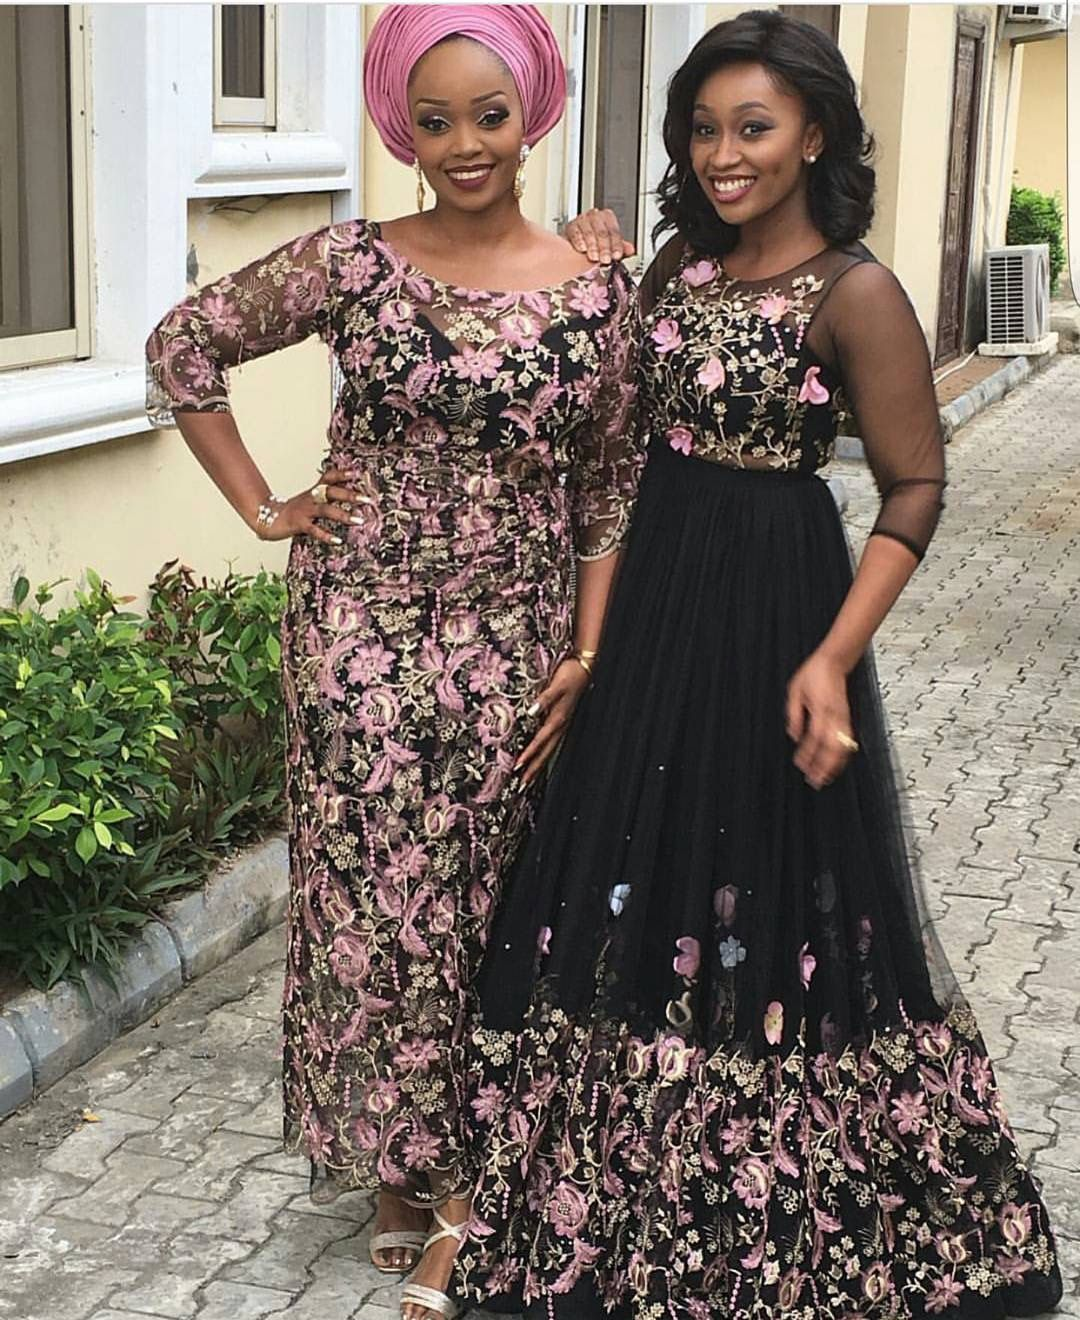 Nigerian fashionistas strut off their unique styles in sophisticated Aso-Ebi styles as they attended #Shakmatic2016's wedding on Saturday the 6th of August, 2016.Bunmi, the bride, is an Aso-Ebi fabric merchant of Bunniebees Fabrics and she ensured her wedding guests slay beautifully in...